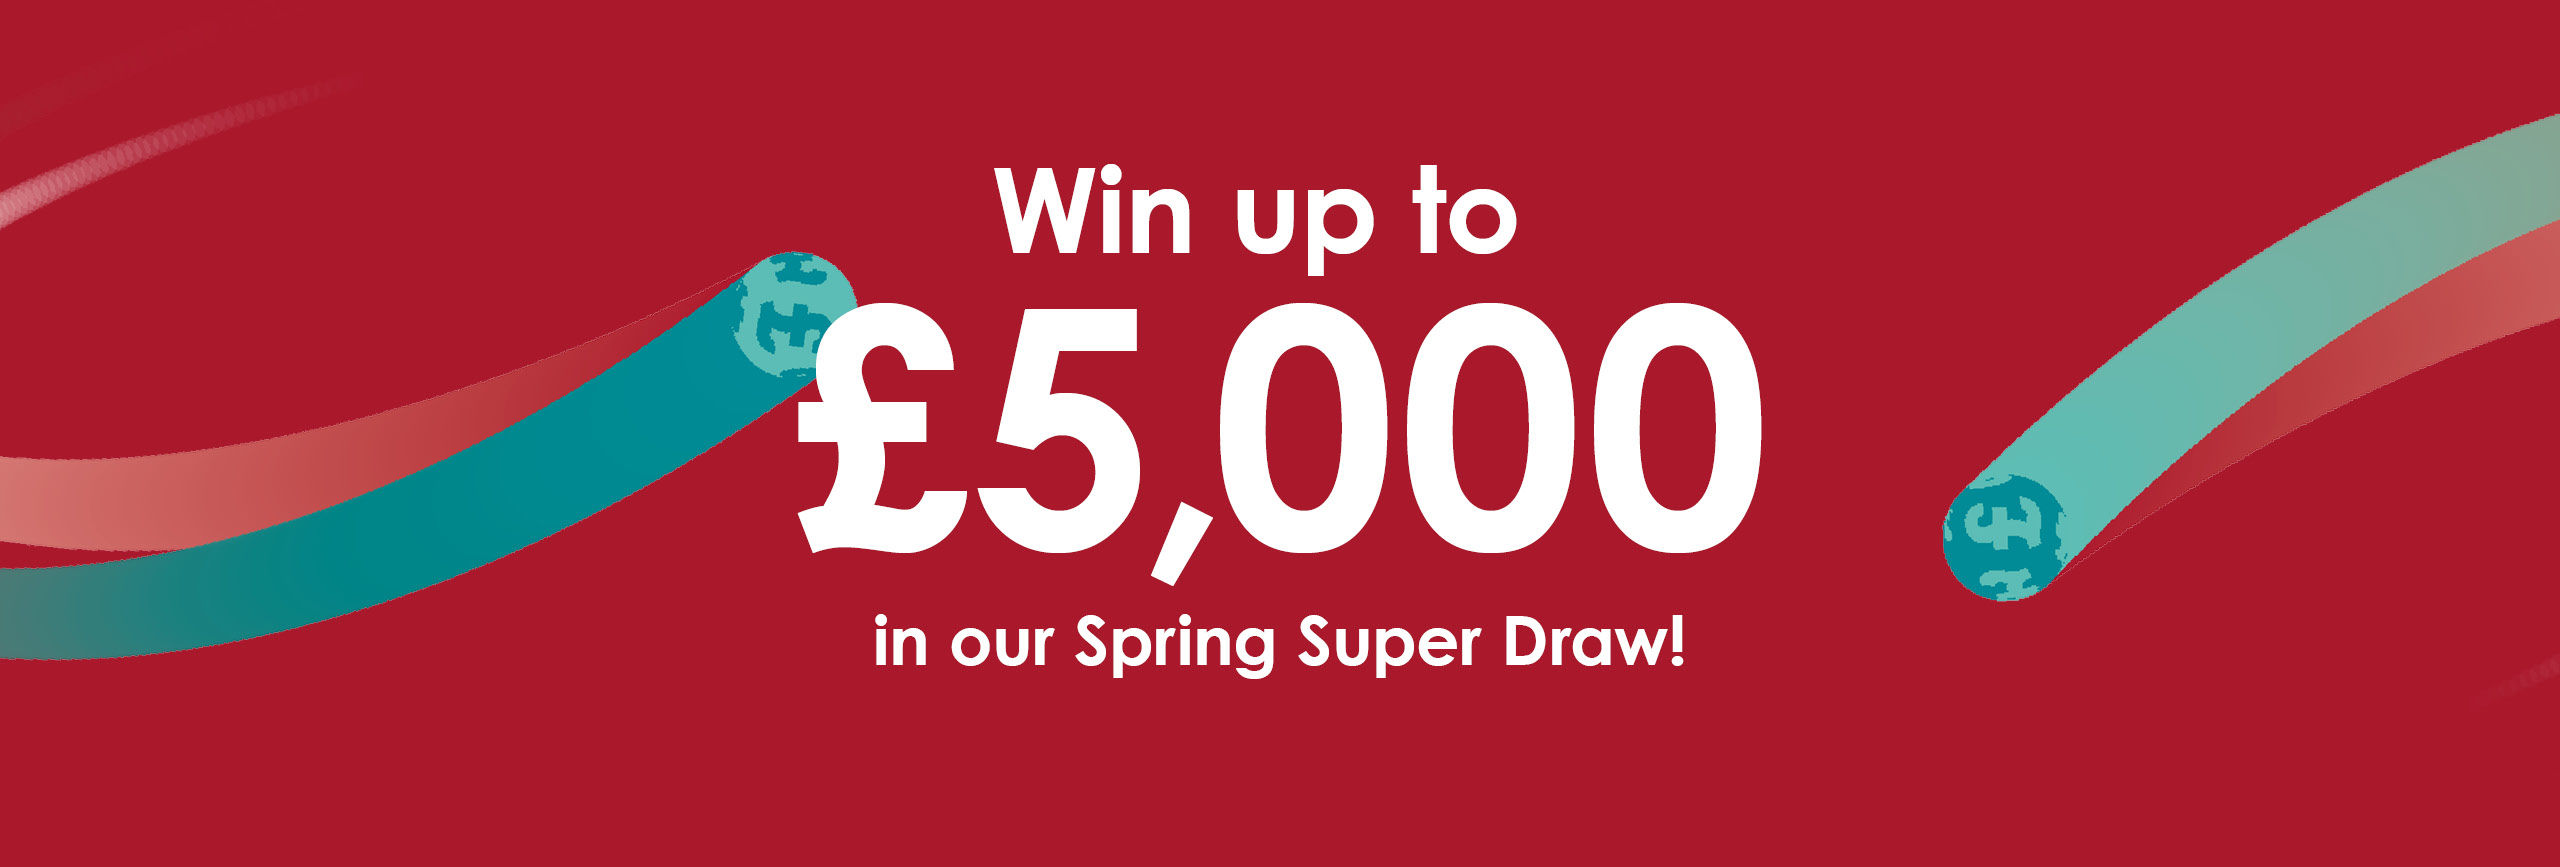 The Myton Hospices - Lottery - Spring Super Draw - Flex Slider